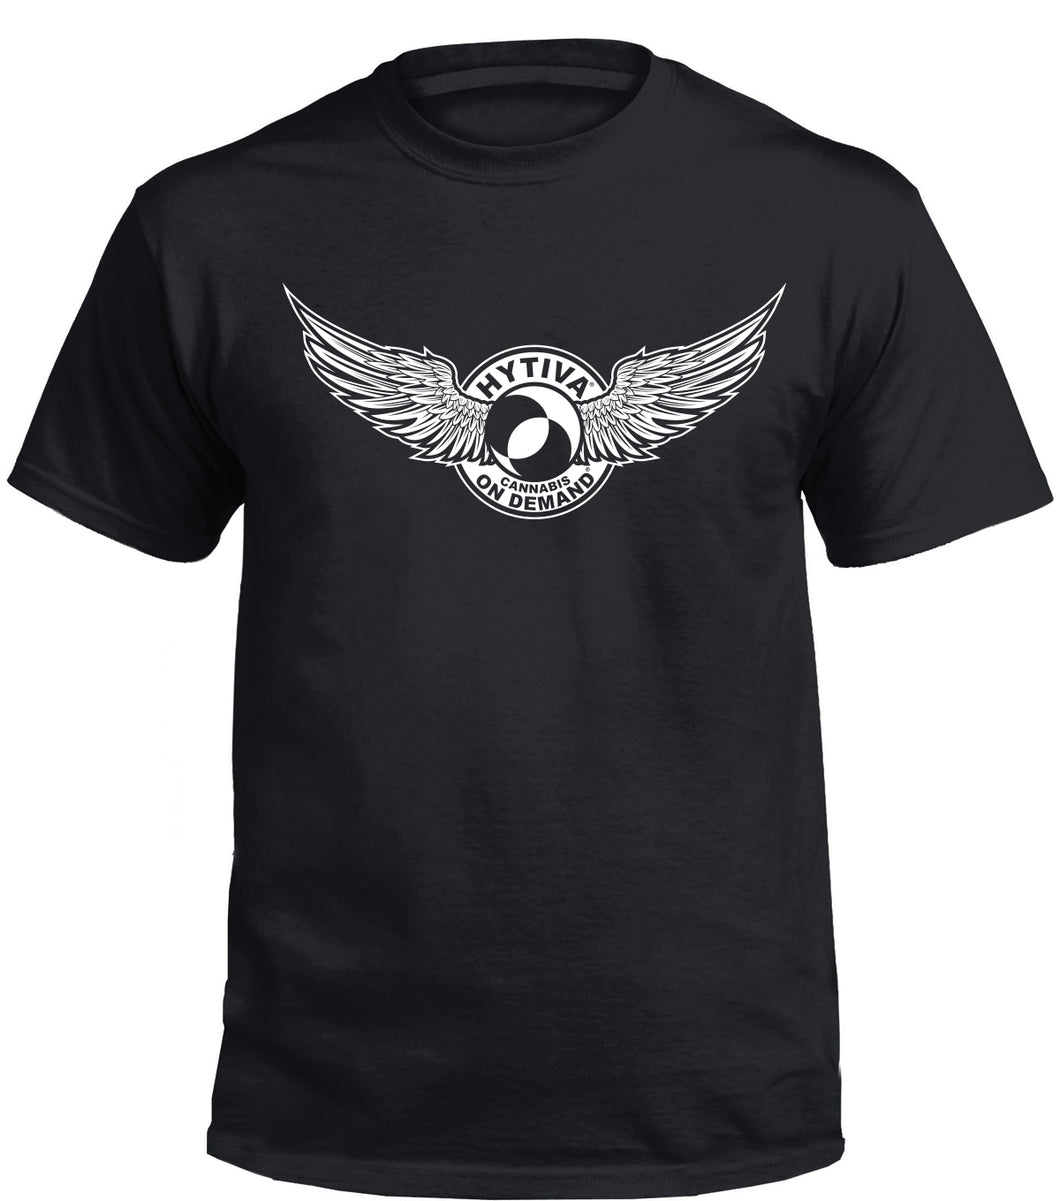 Hytiva Wings Tee